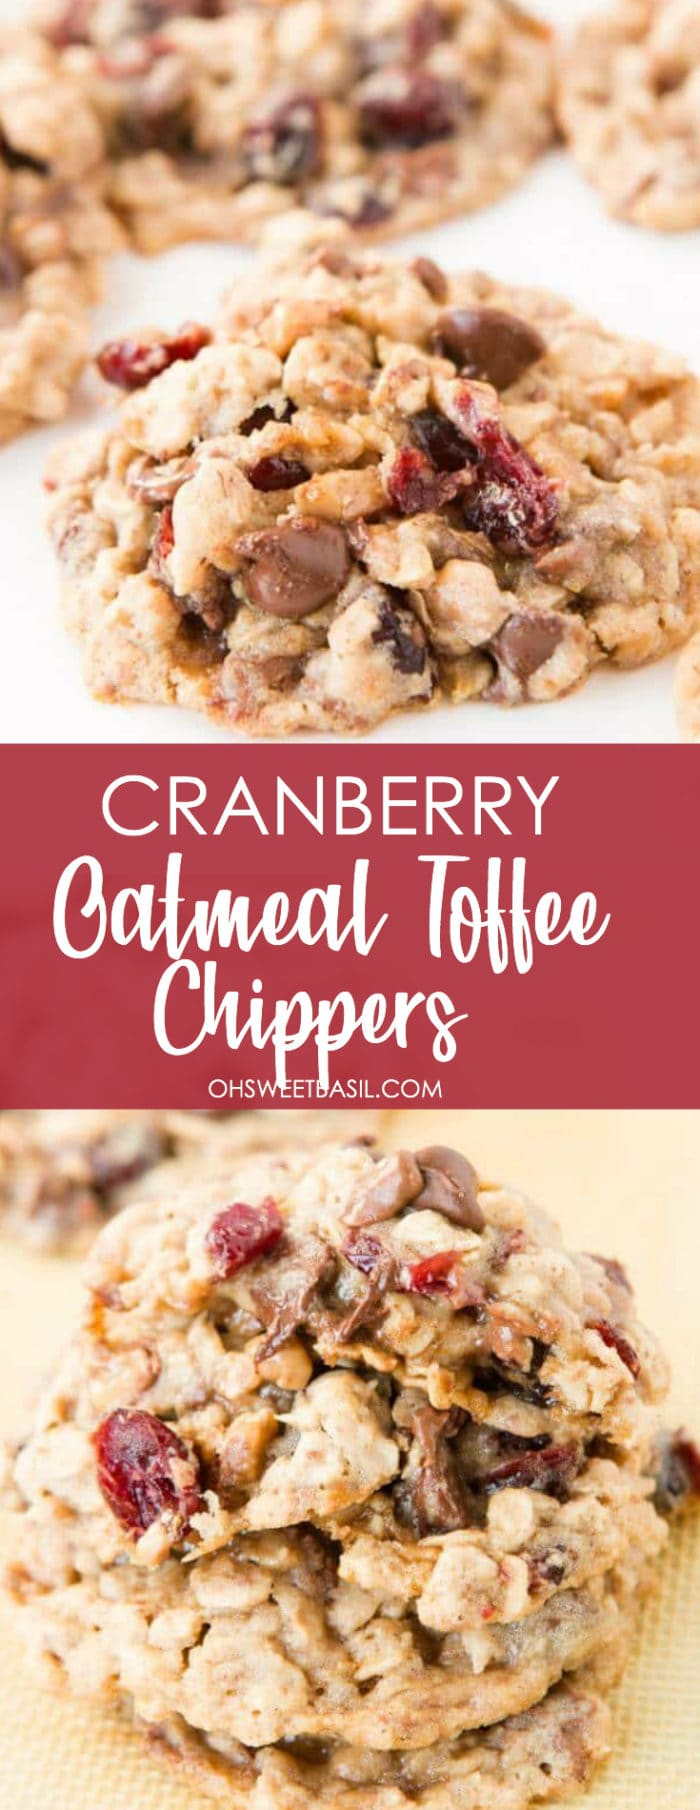 A stack of the best Cranberry Toffee Oatmeal Chippers